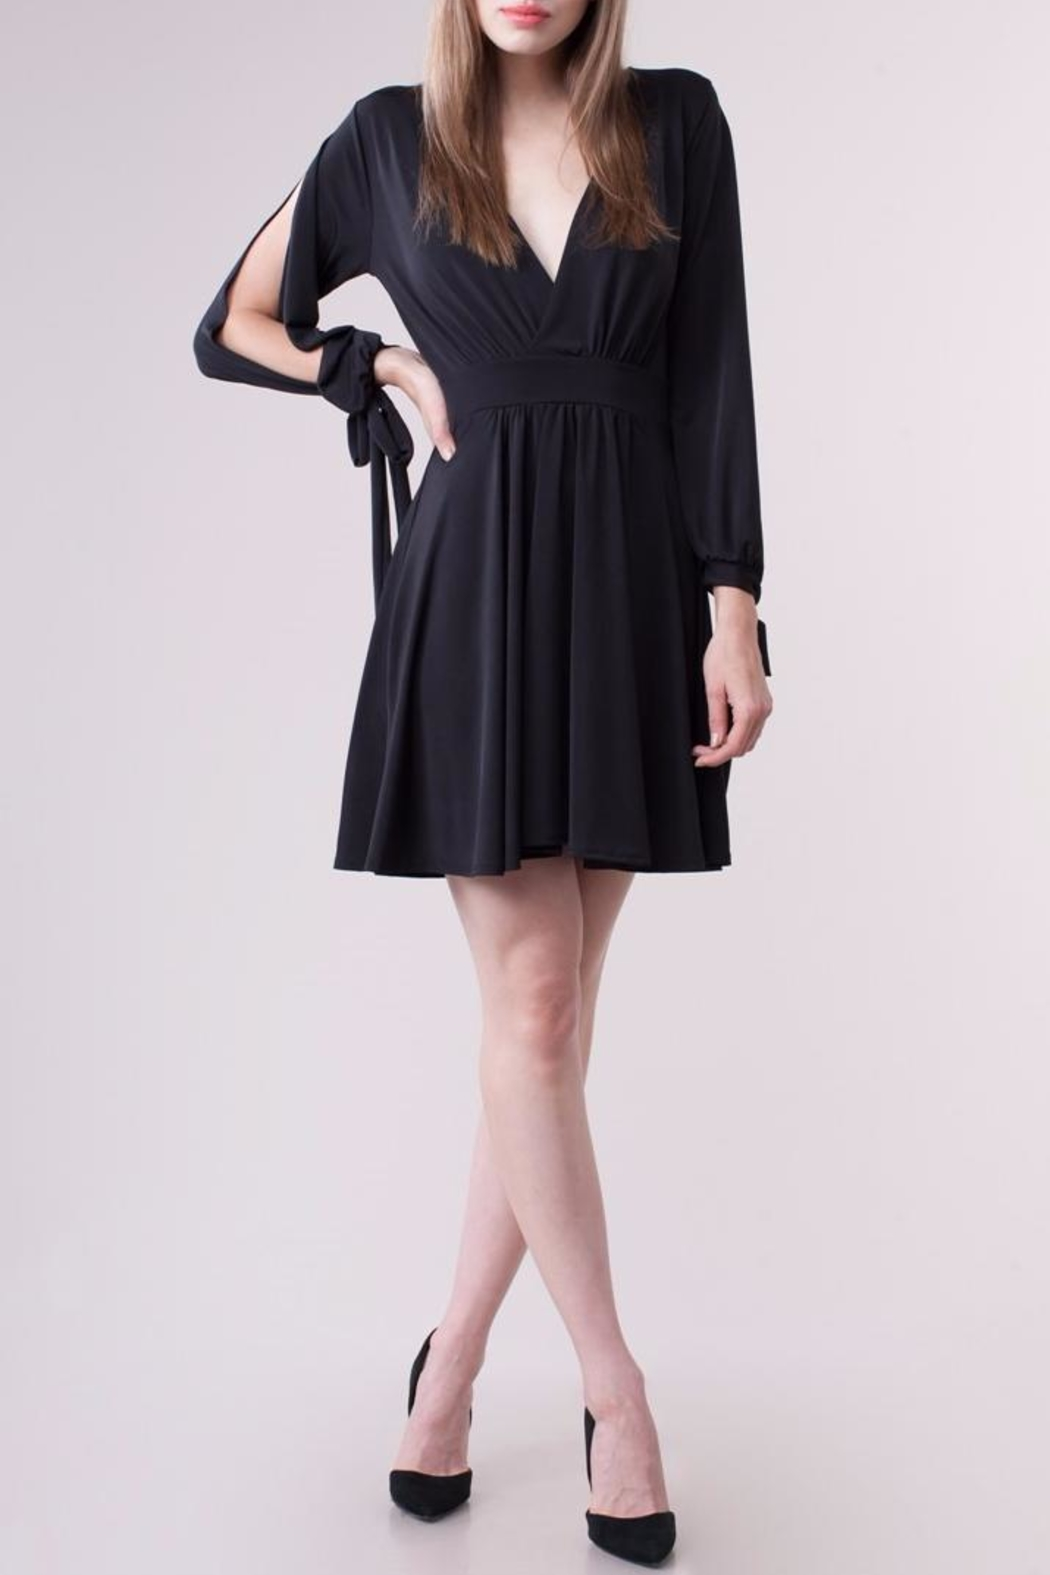 People Outfitter Bennett Black Dress - Main Image